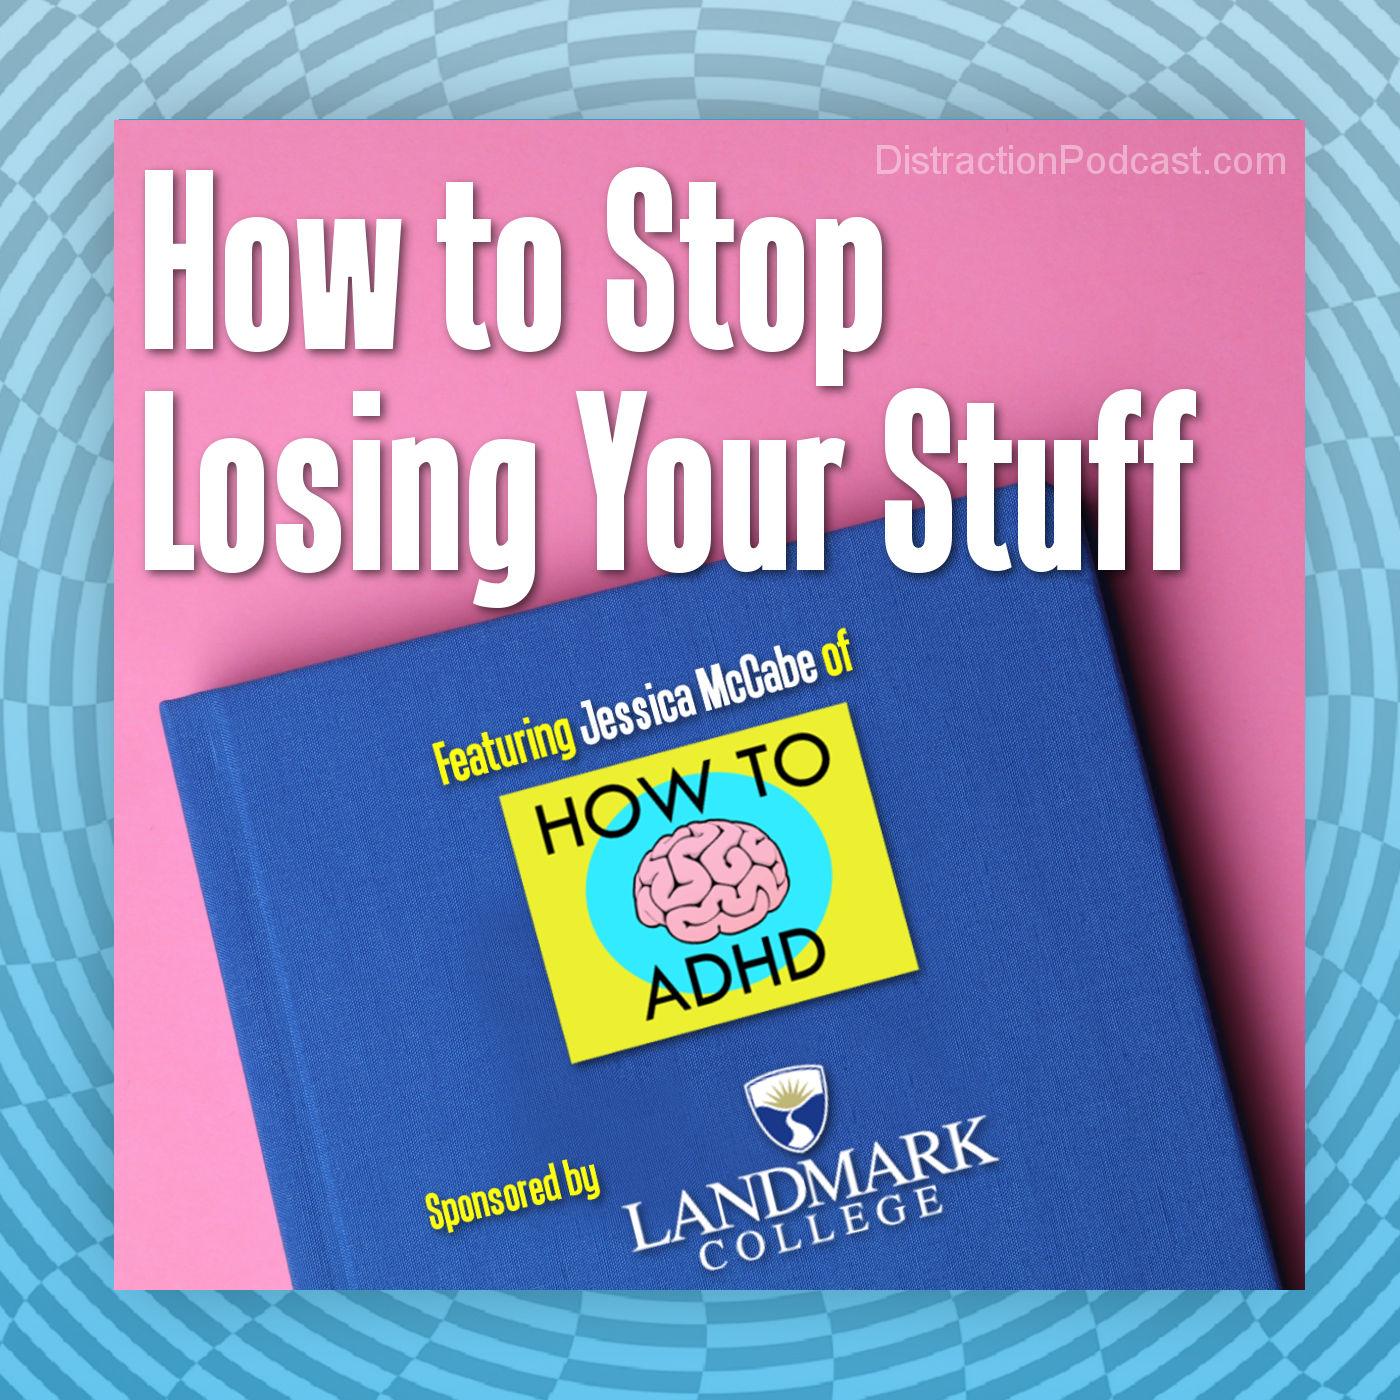 How to Stop Losing Your Stuff with How to ADHD and Landmark College